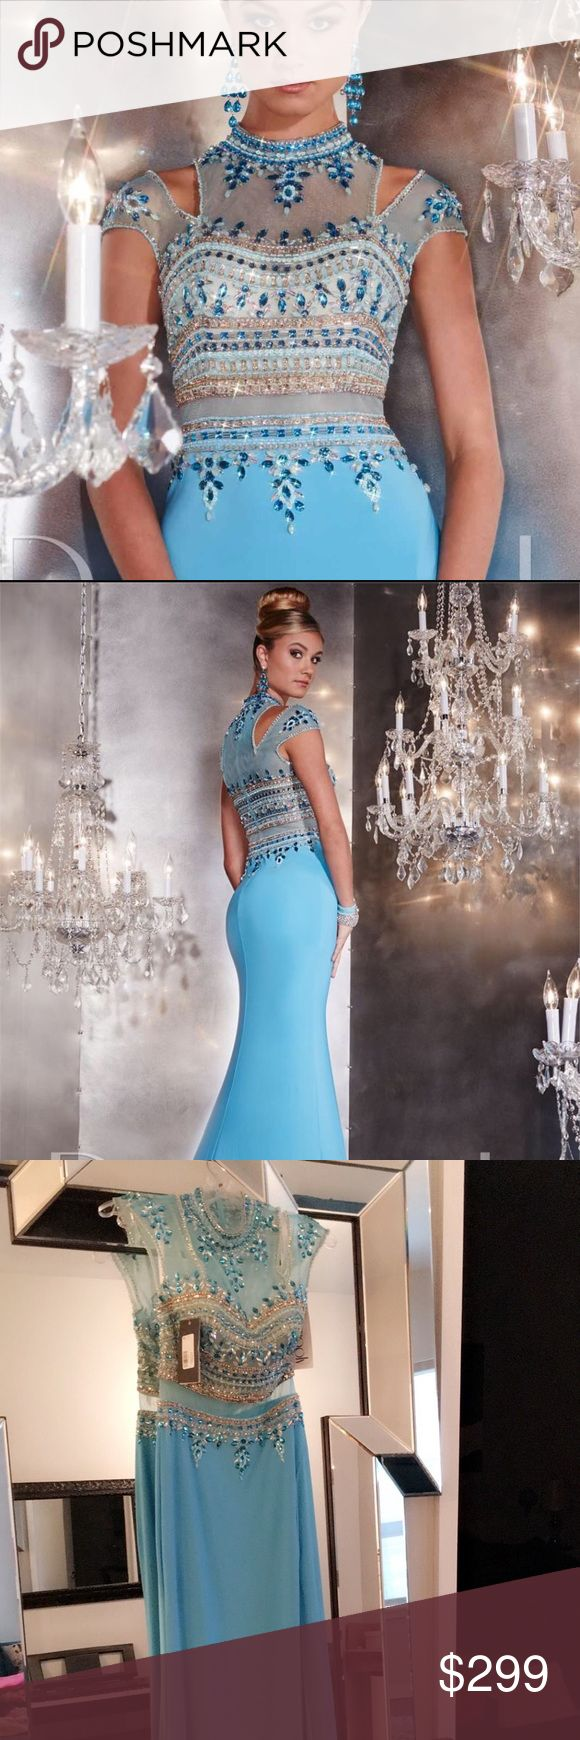 Panoply dress style 14747 aqua size 6 Panoply dress style 14747 aqua size 6 NEW WITH TAGS.  never worn.  Bought for Mardi Gras ball and ended up not going.  Still online for $438 panoply Dresses Prom